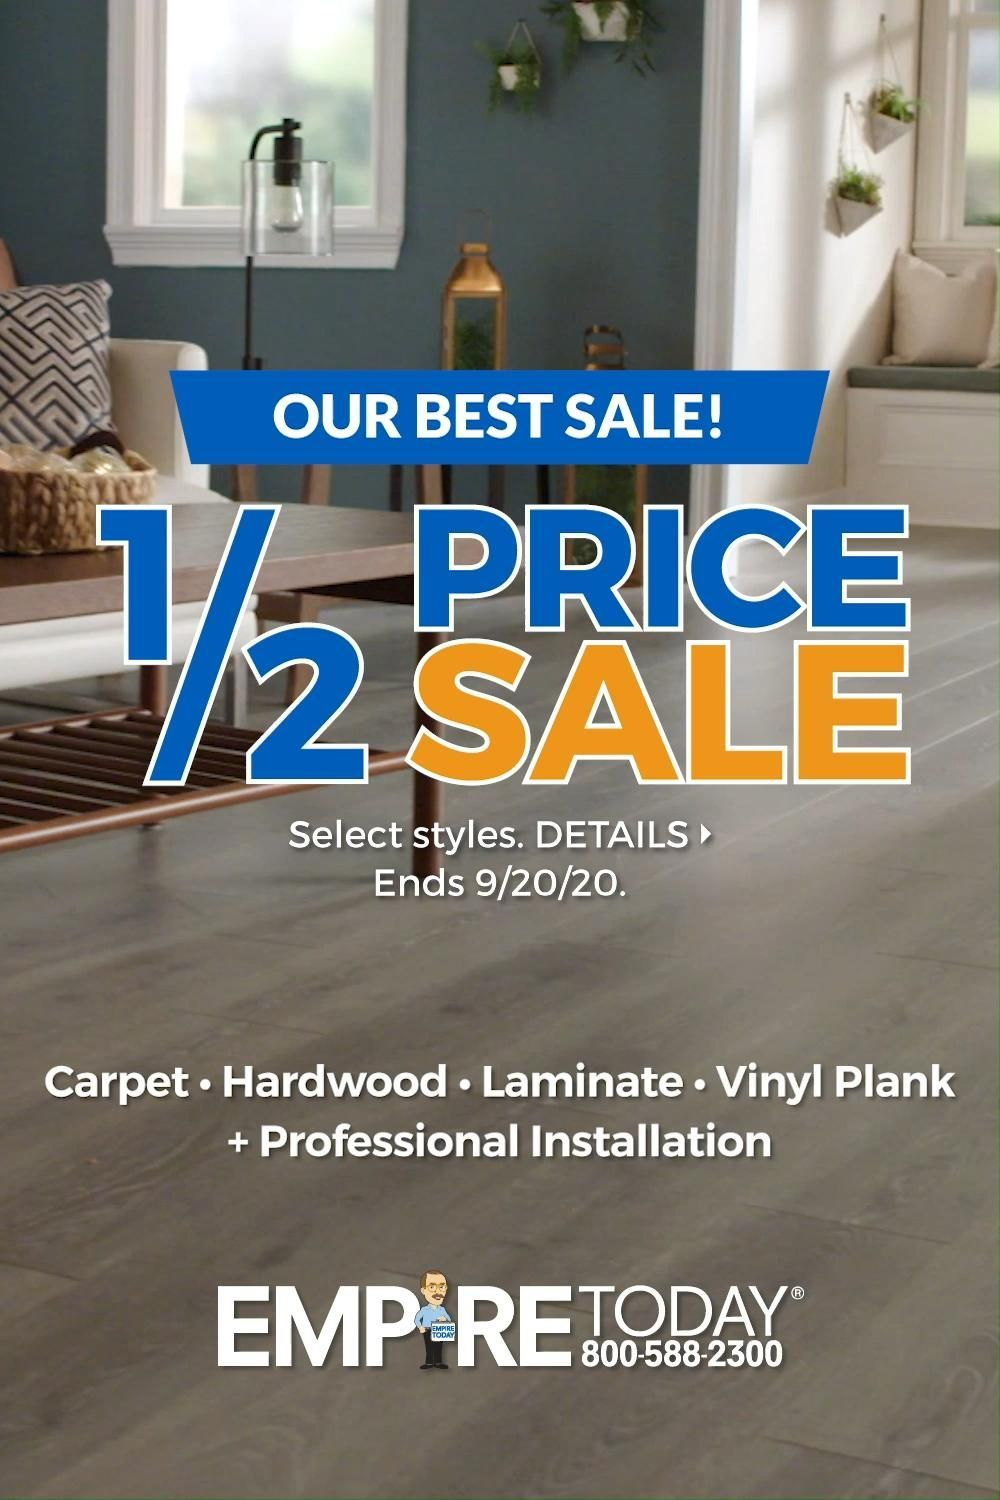 Don T Miss Our Biggest Sale Get 1 2 Price On Select Styles Of Hardwood Vinyl Plank Laminate Carp In 2020 Vinyl Plank House And Home Magazine Brick Exterior House